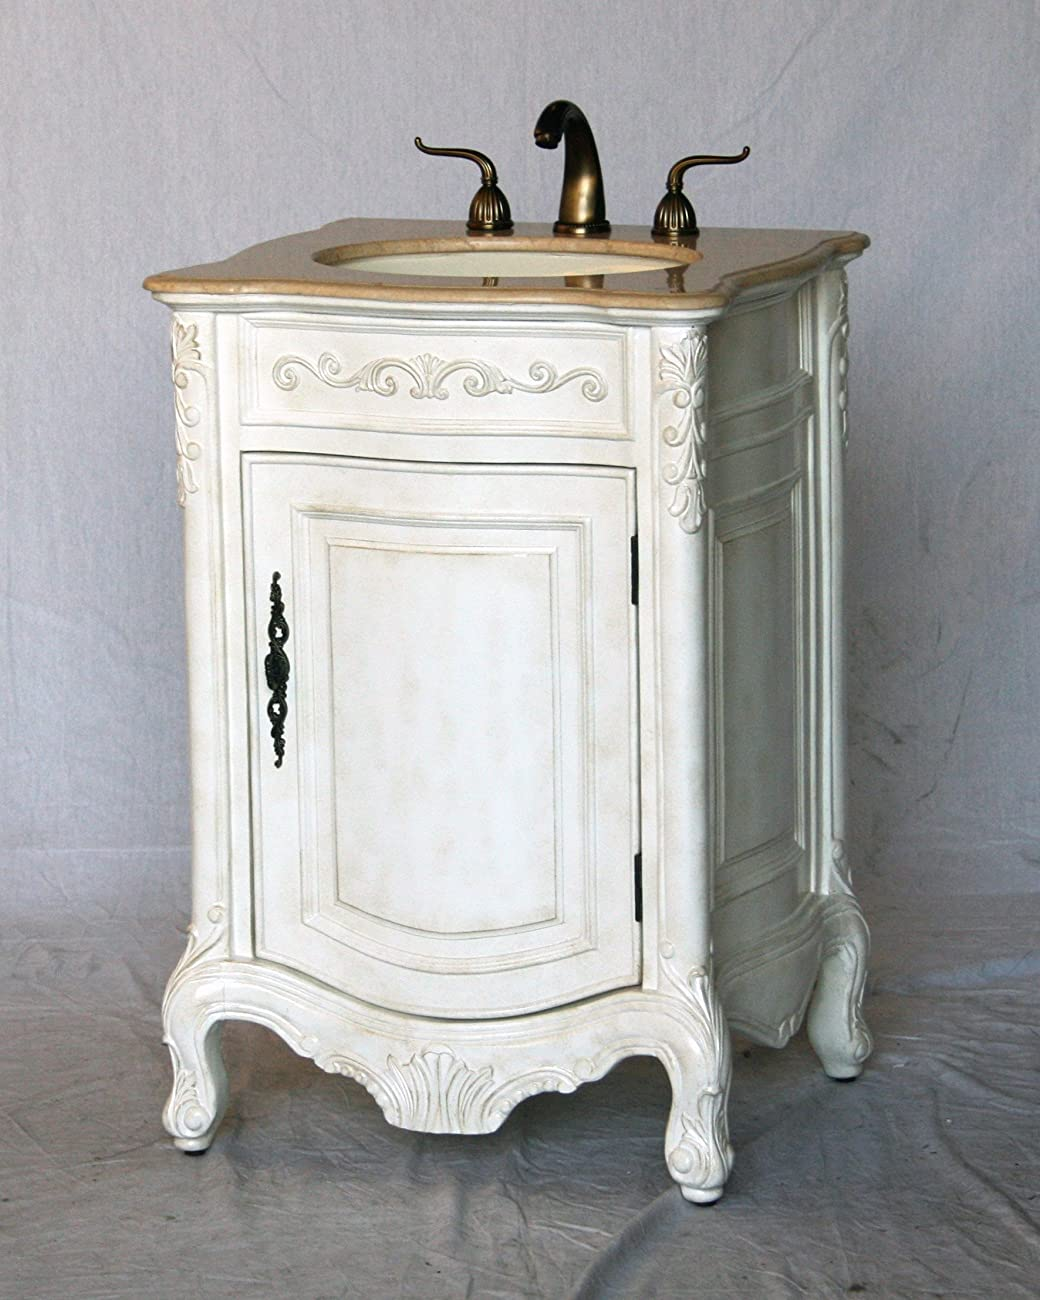 24-Inch Antique Style Single Sink Bathroom Vanity Model 2232-AW 0